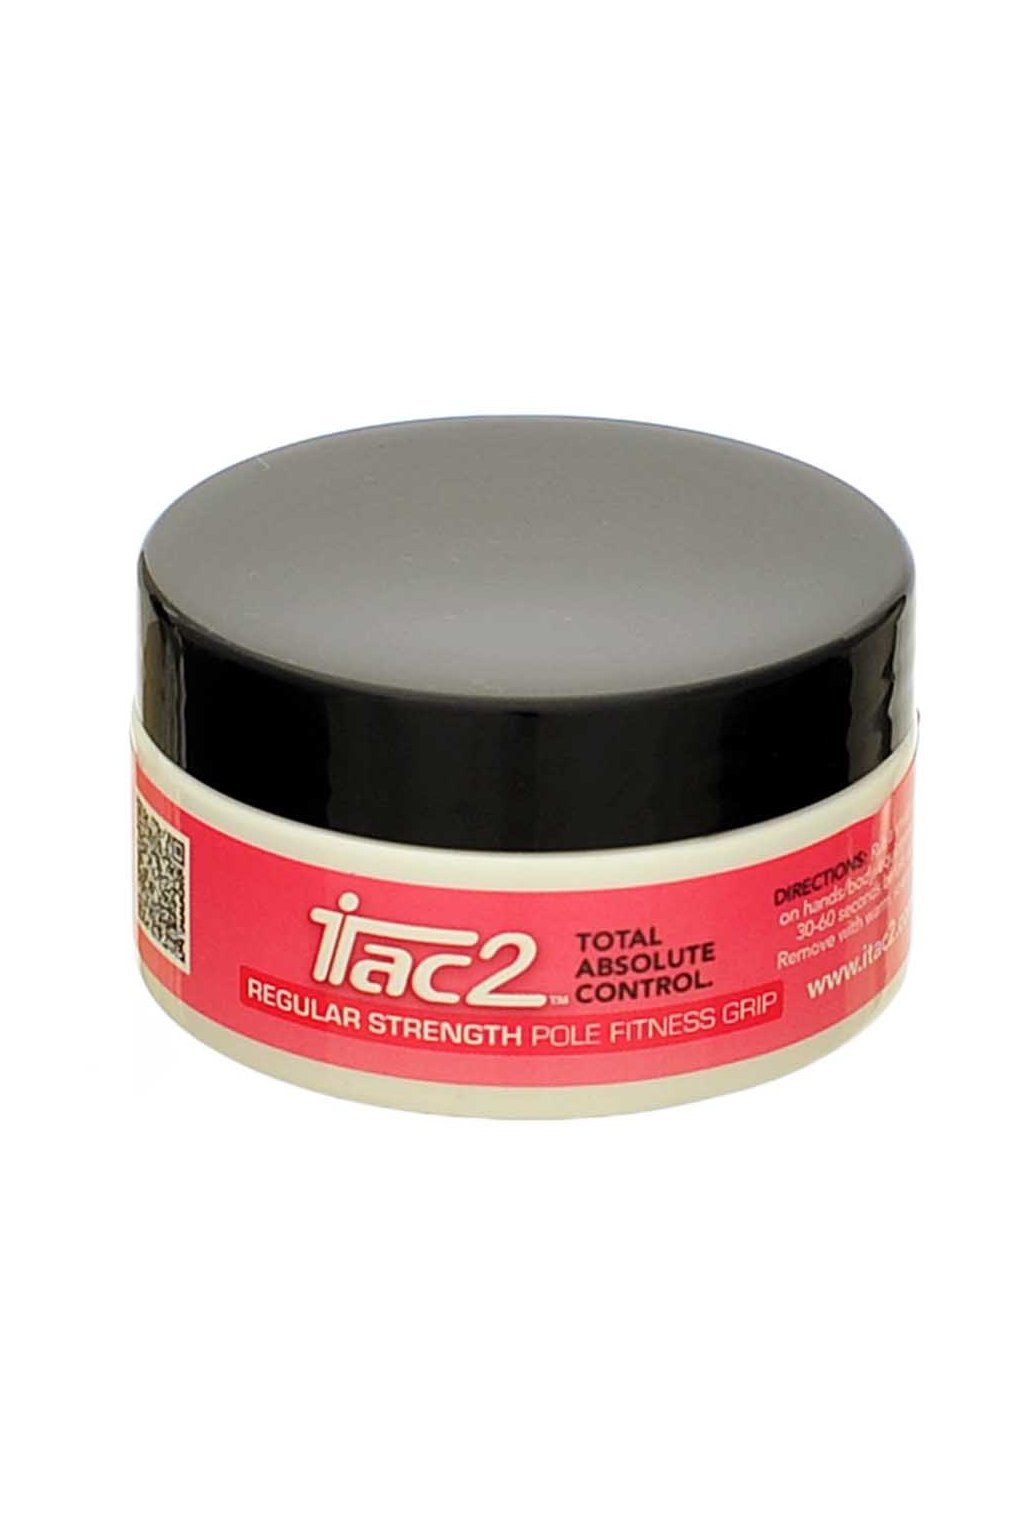 iTac2 regular strenght